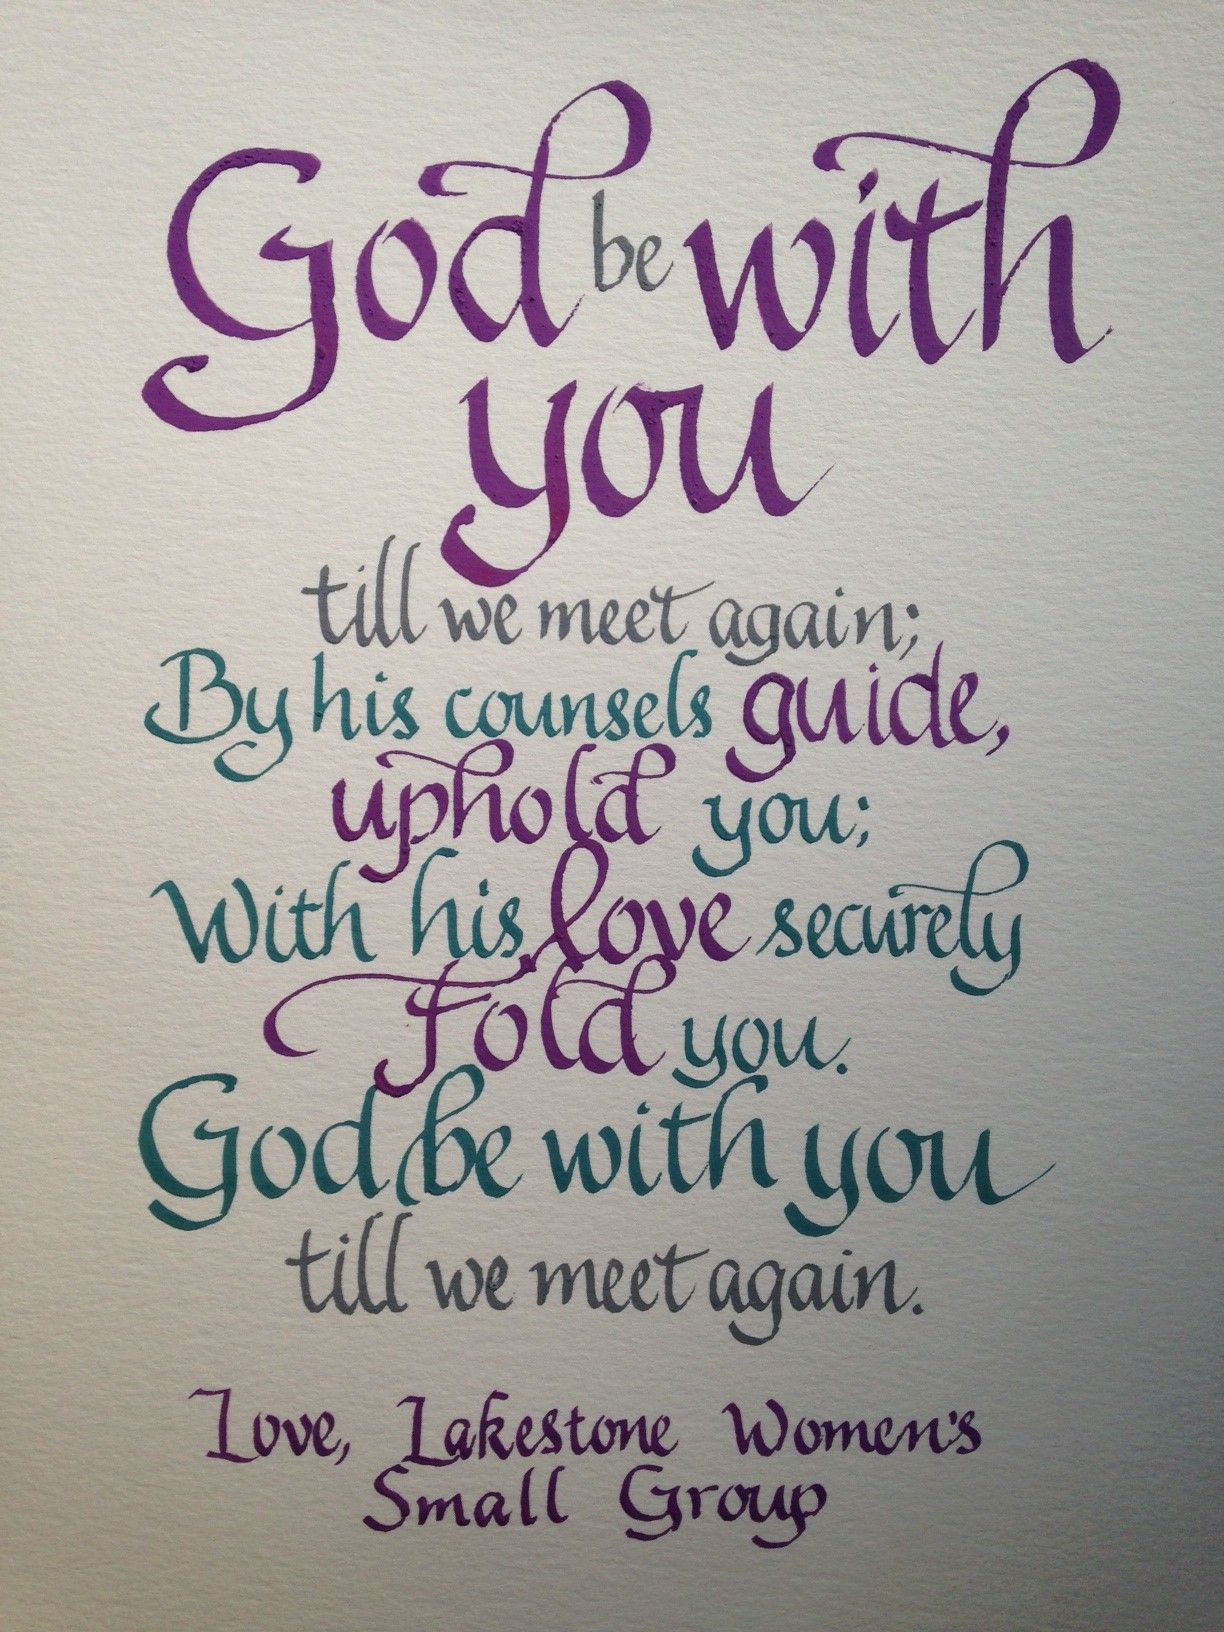 Goodbye Farewell Gift Words From A Classic Hymn With Images